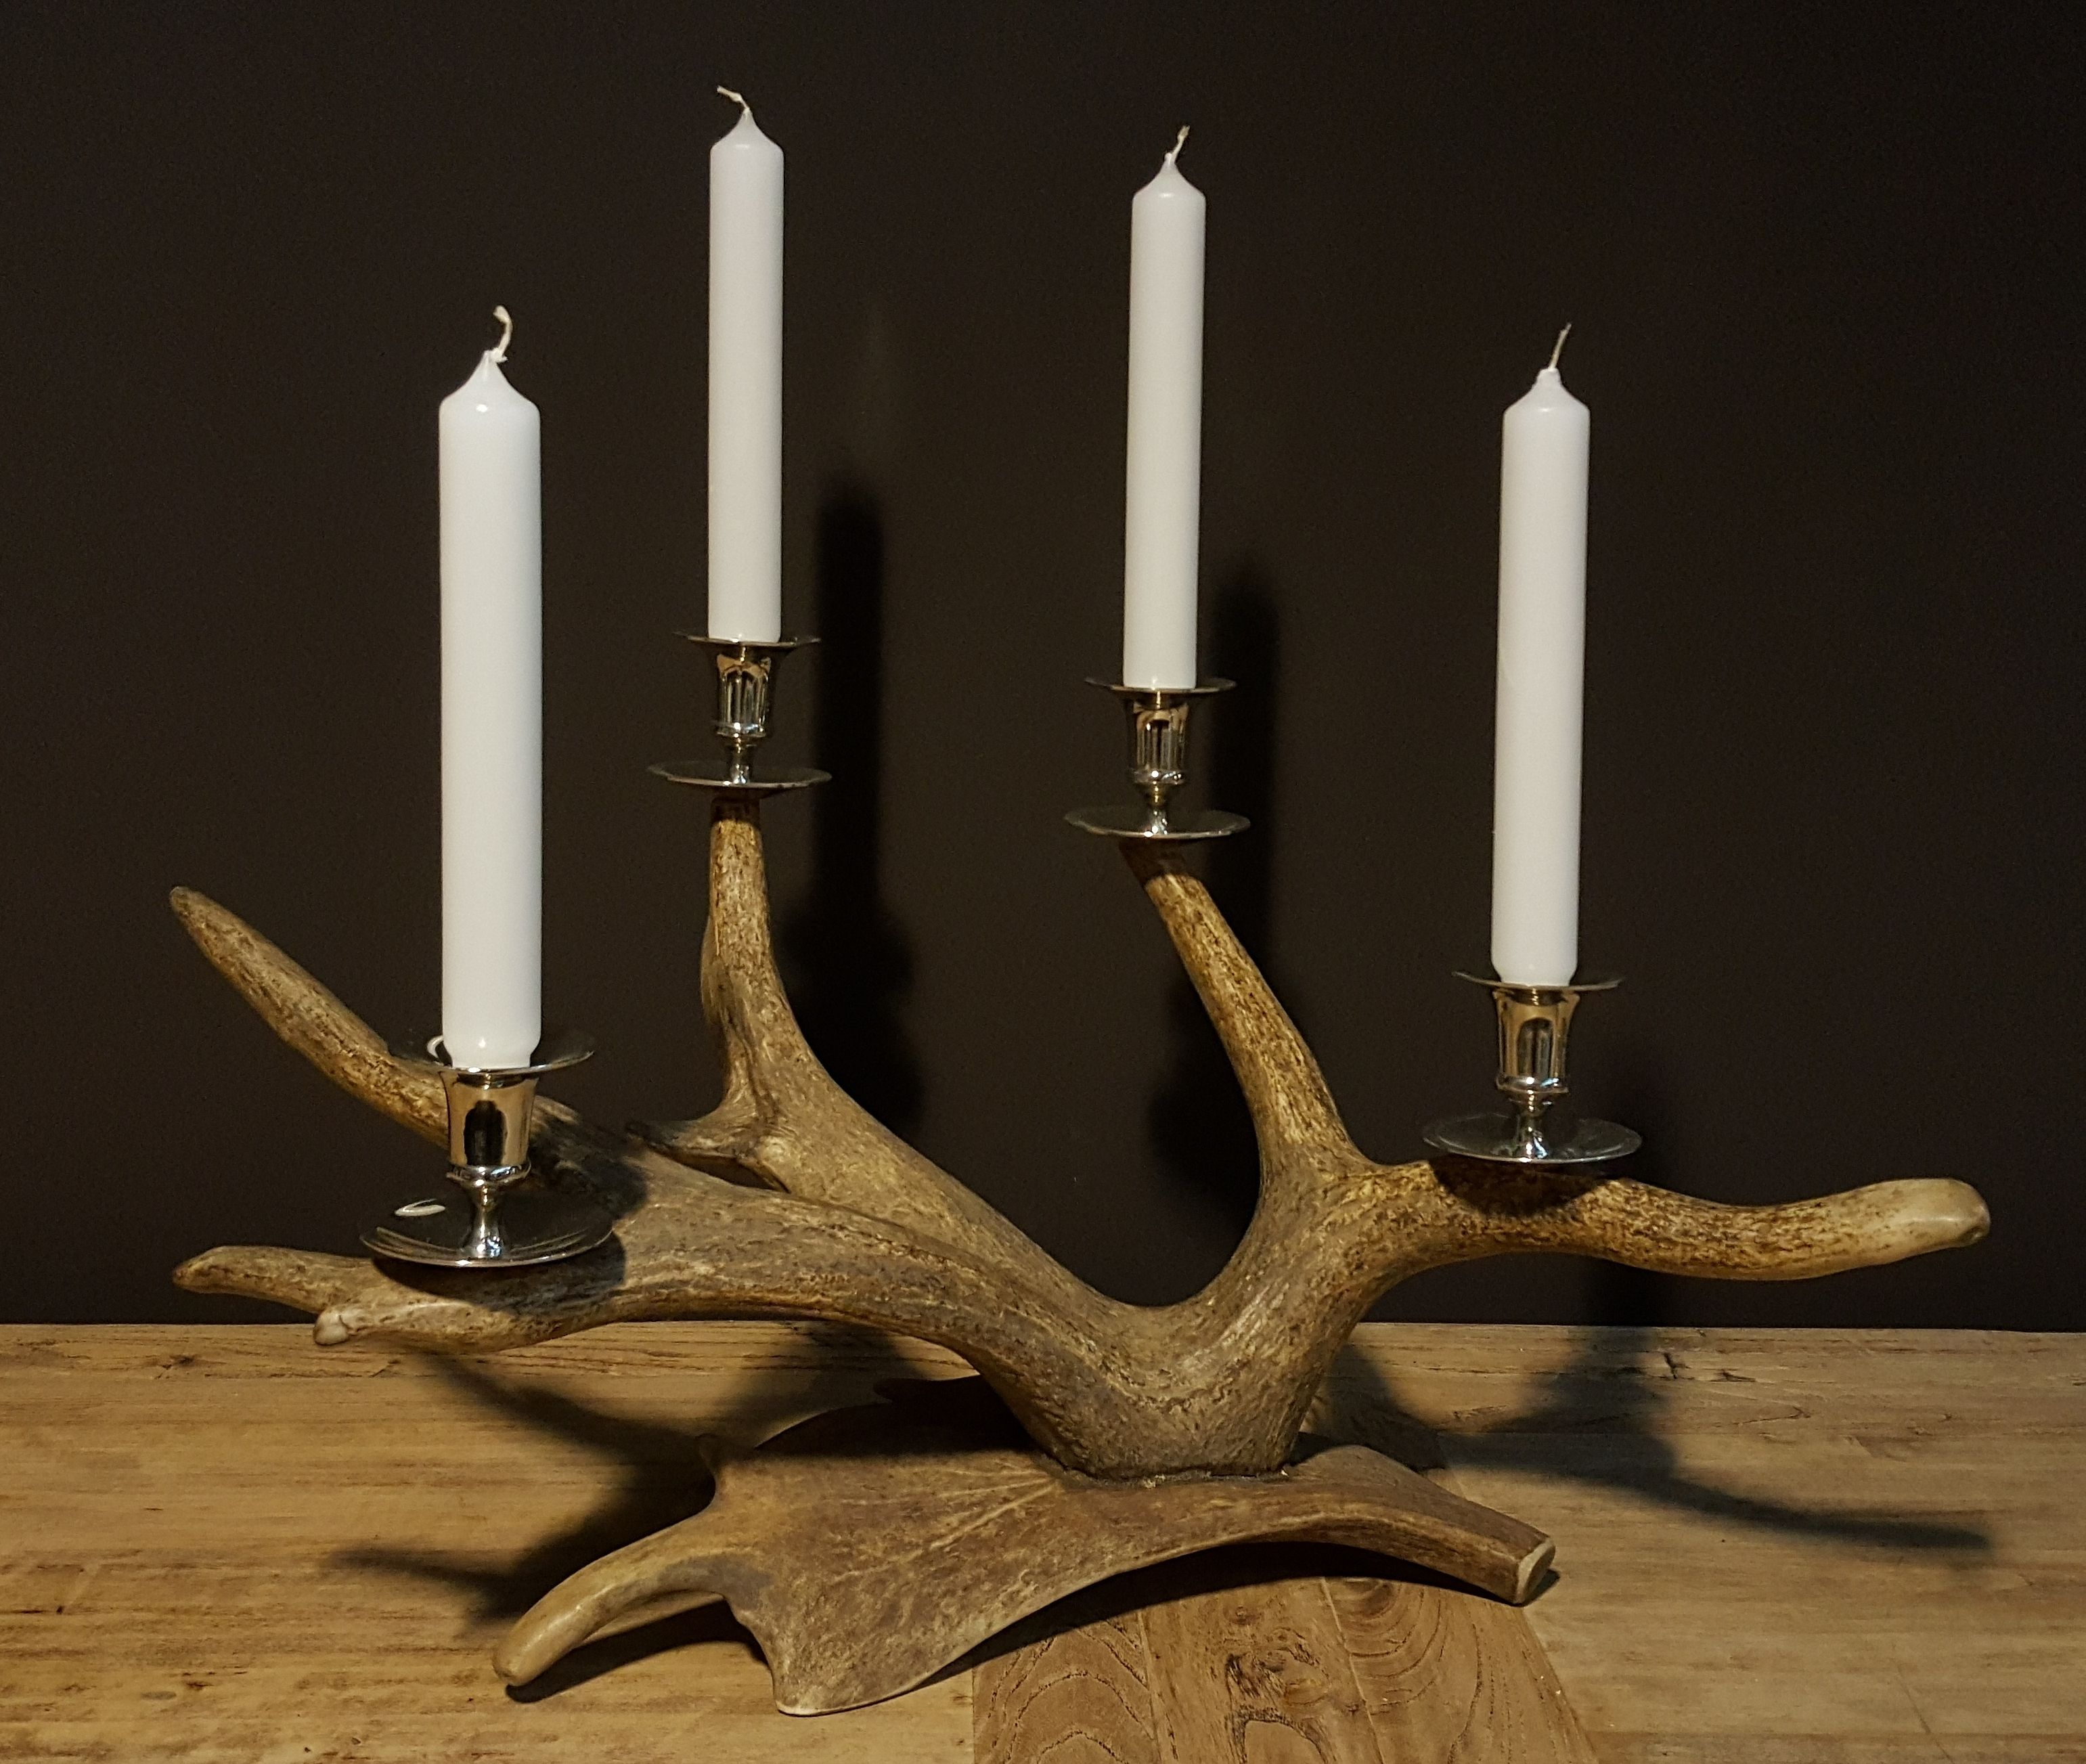 Antler candleholder - we have many different antler candle holders in stock -antler home decoration - antler furniture -